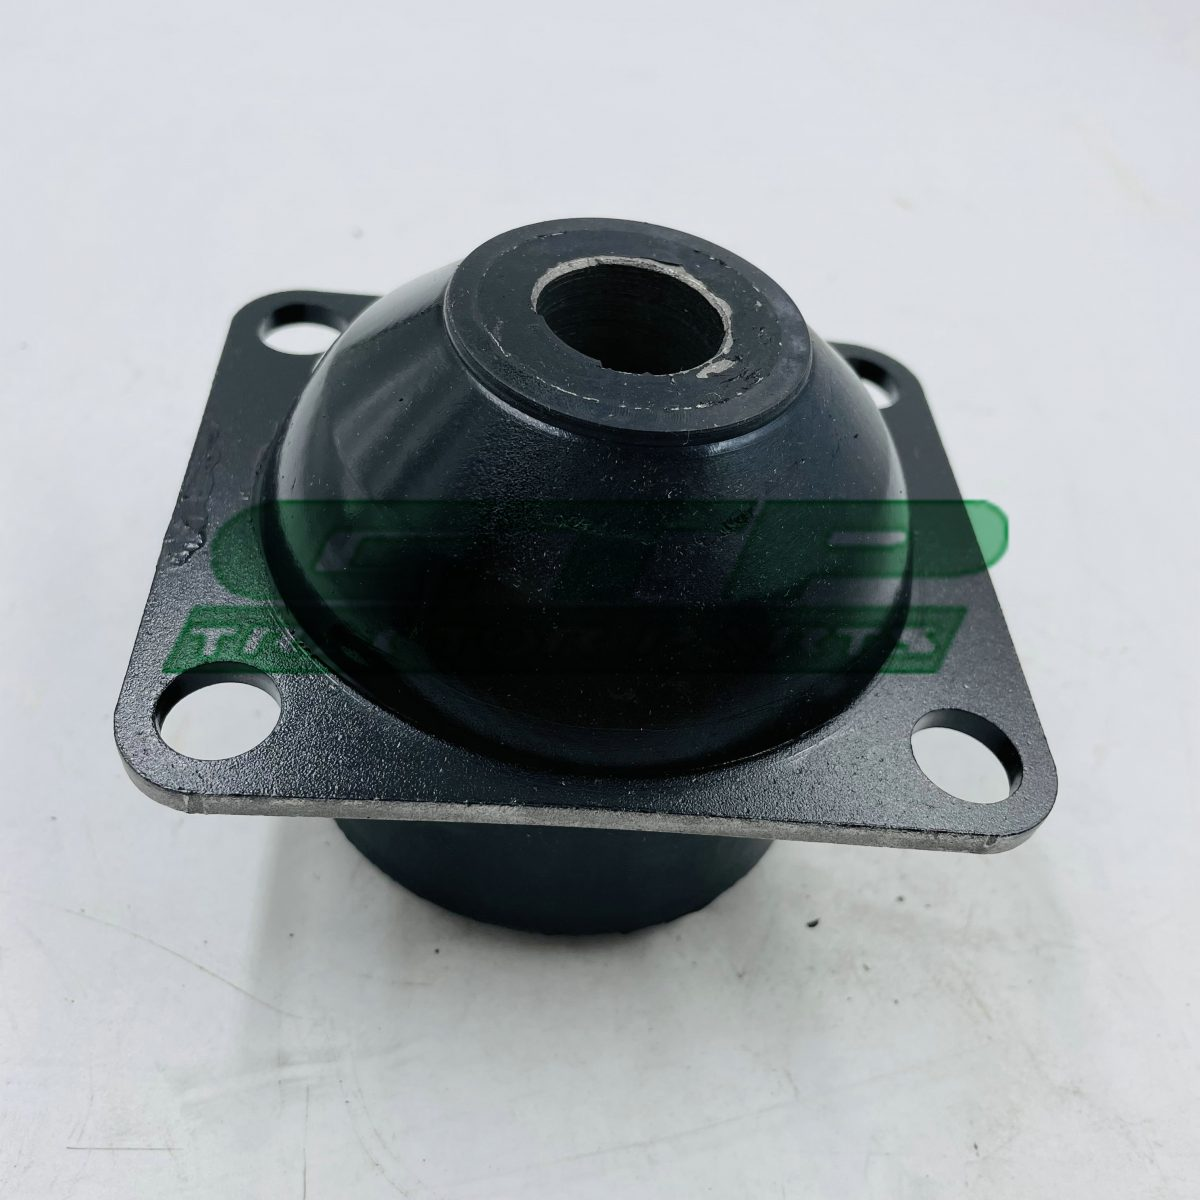 82021655 CAB MOUNTING BUSH RUBBER FOR TRACTORS